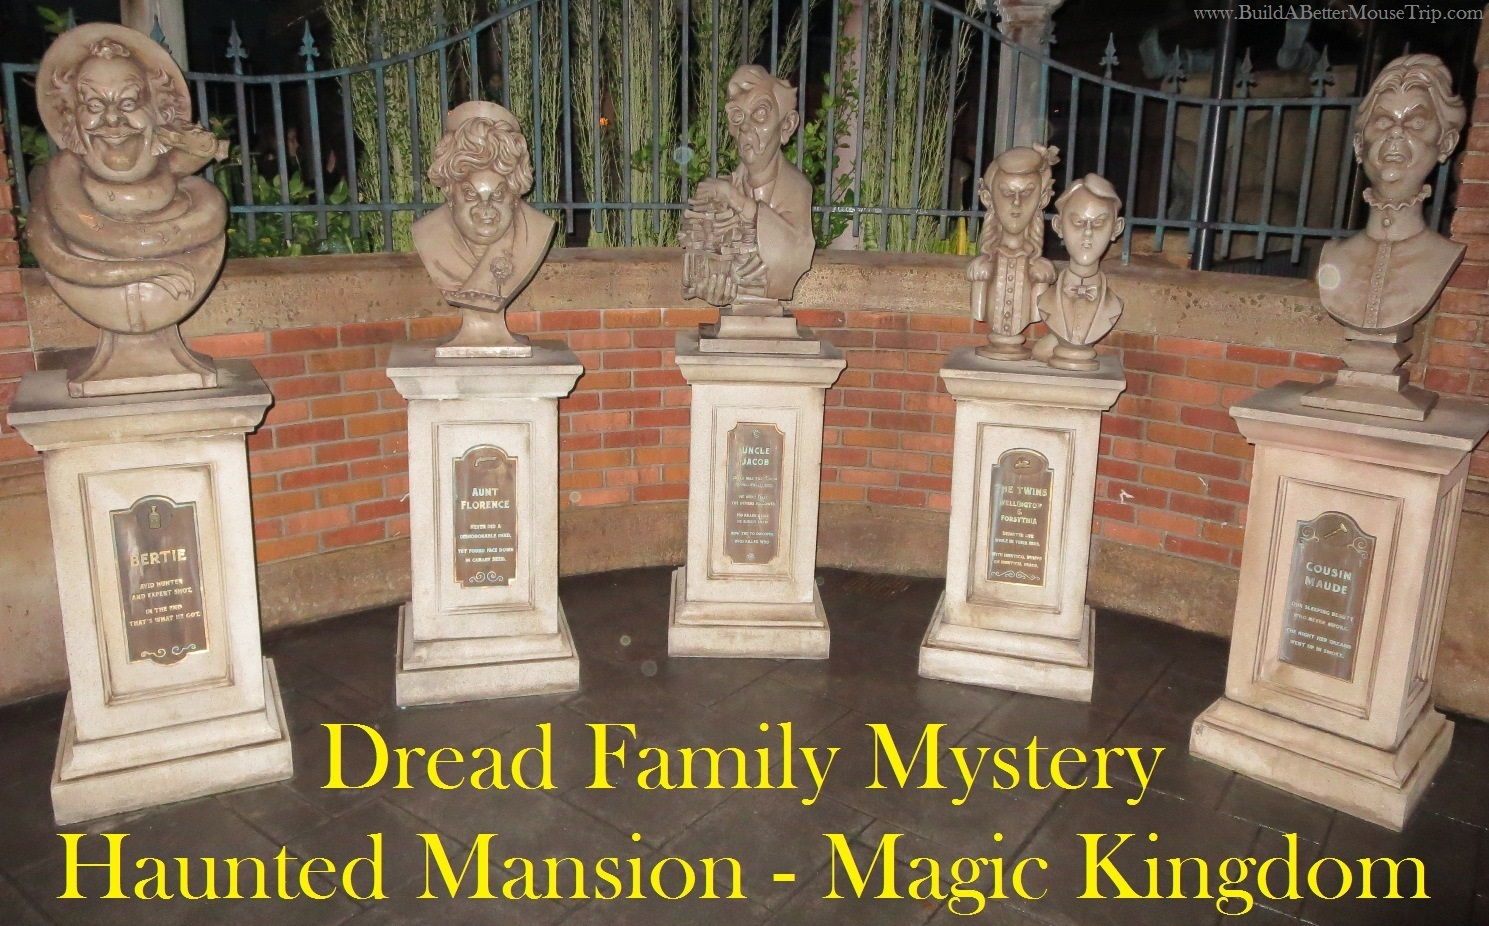 MK-Haunted-Mansion-Dread-Family-Mystery.JPG